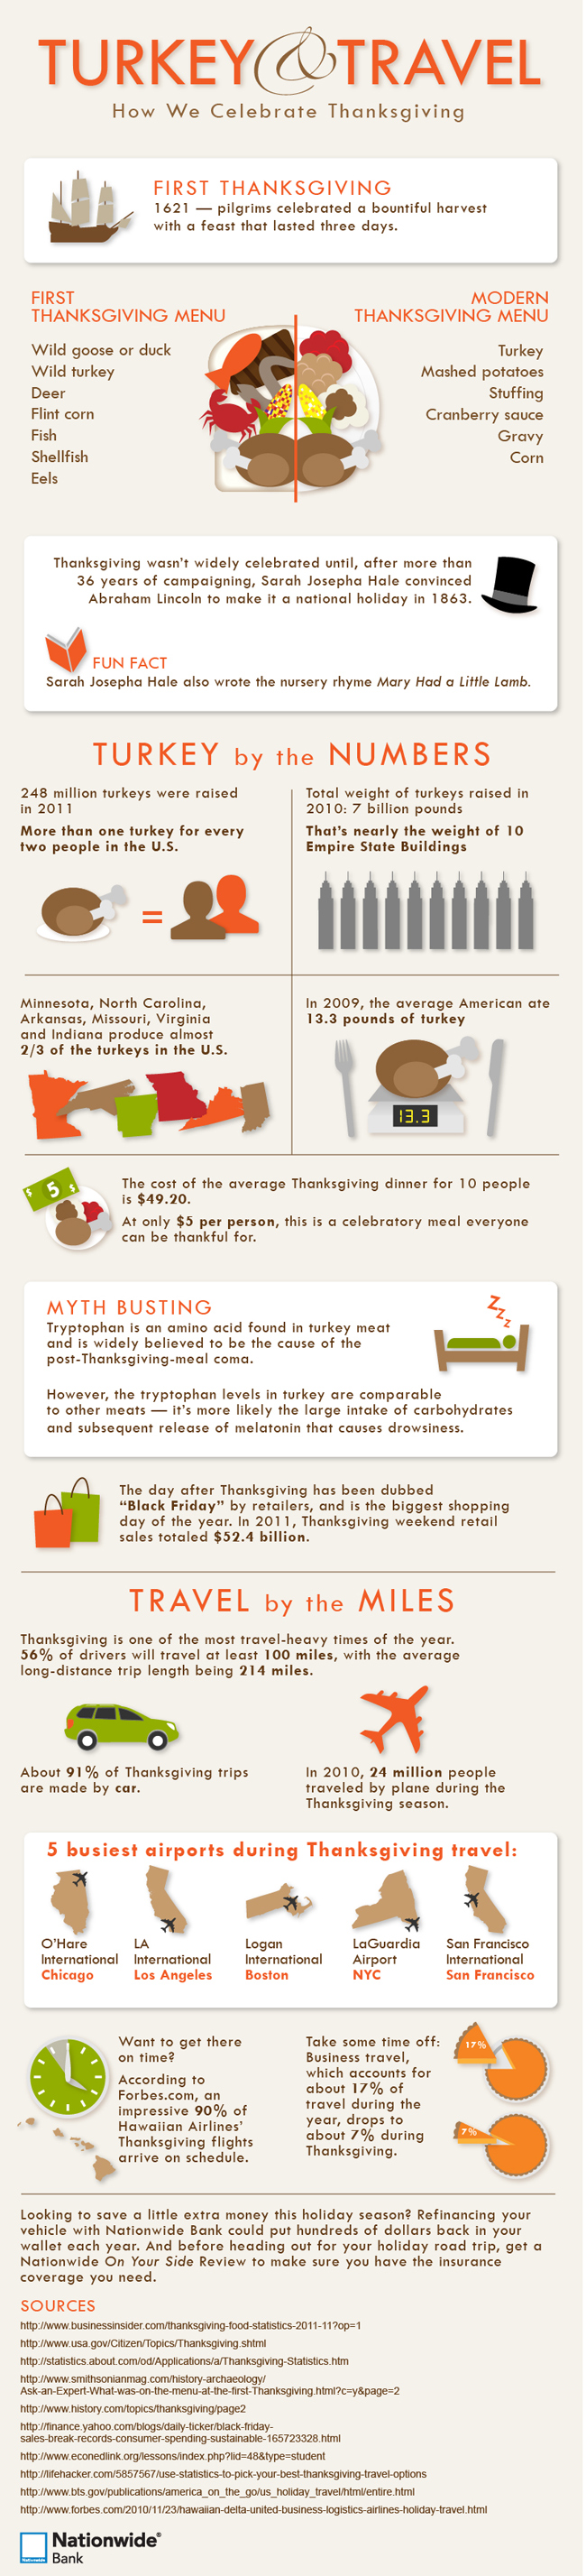 Thanksgiving Facts and Statistics